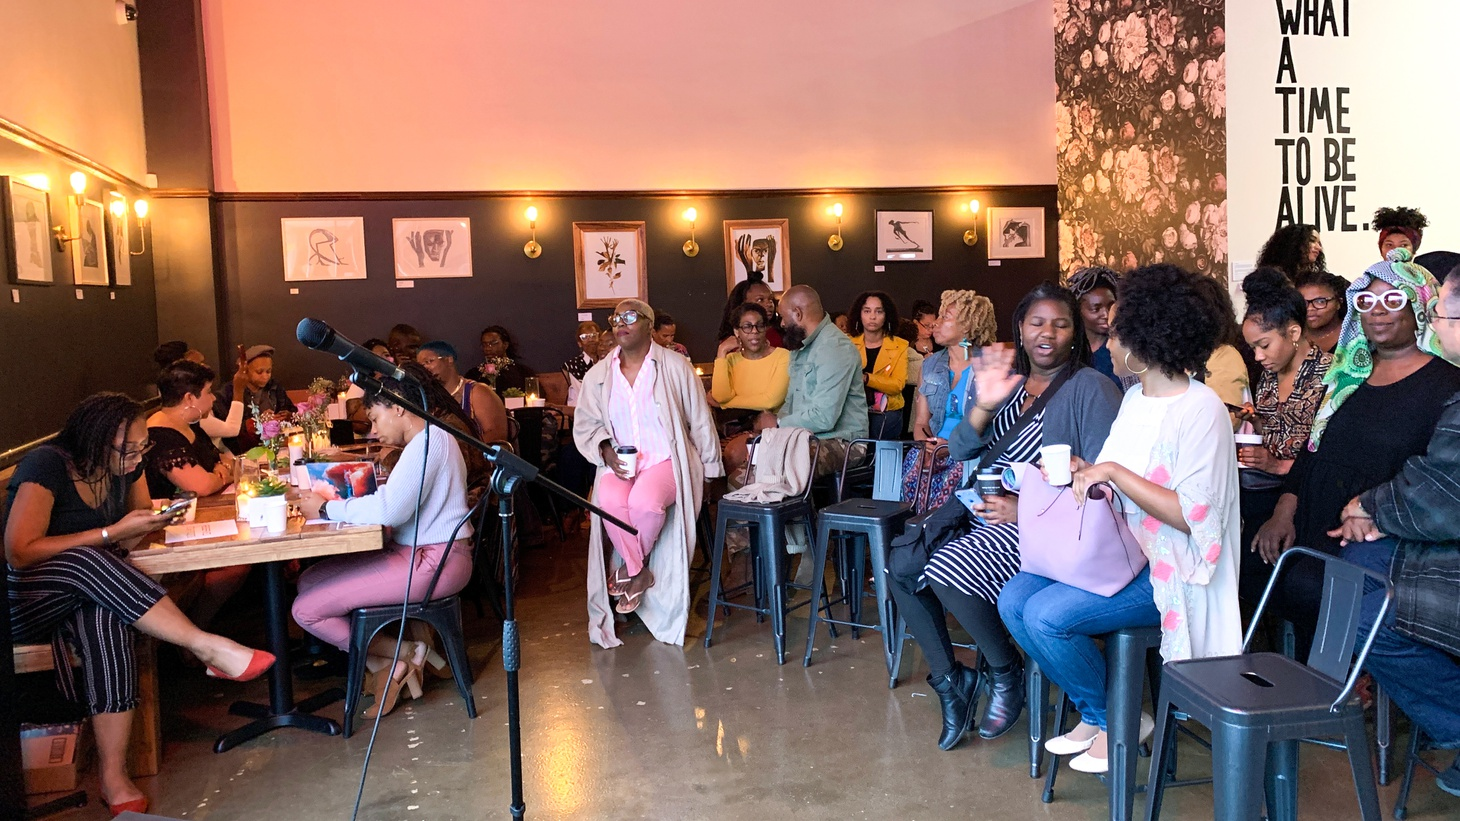 A packed crowd waits for the Free Black Women's Library event to start at Hilltop Coffee + Kitchen.